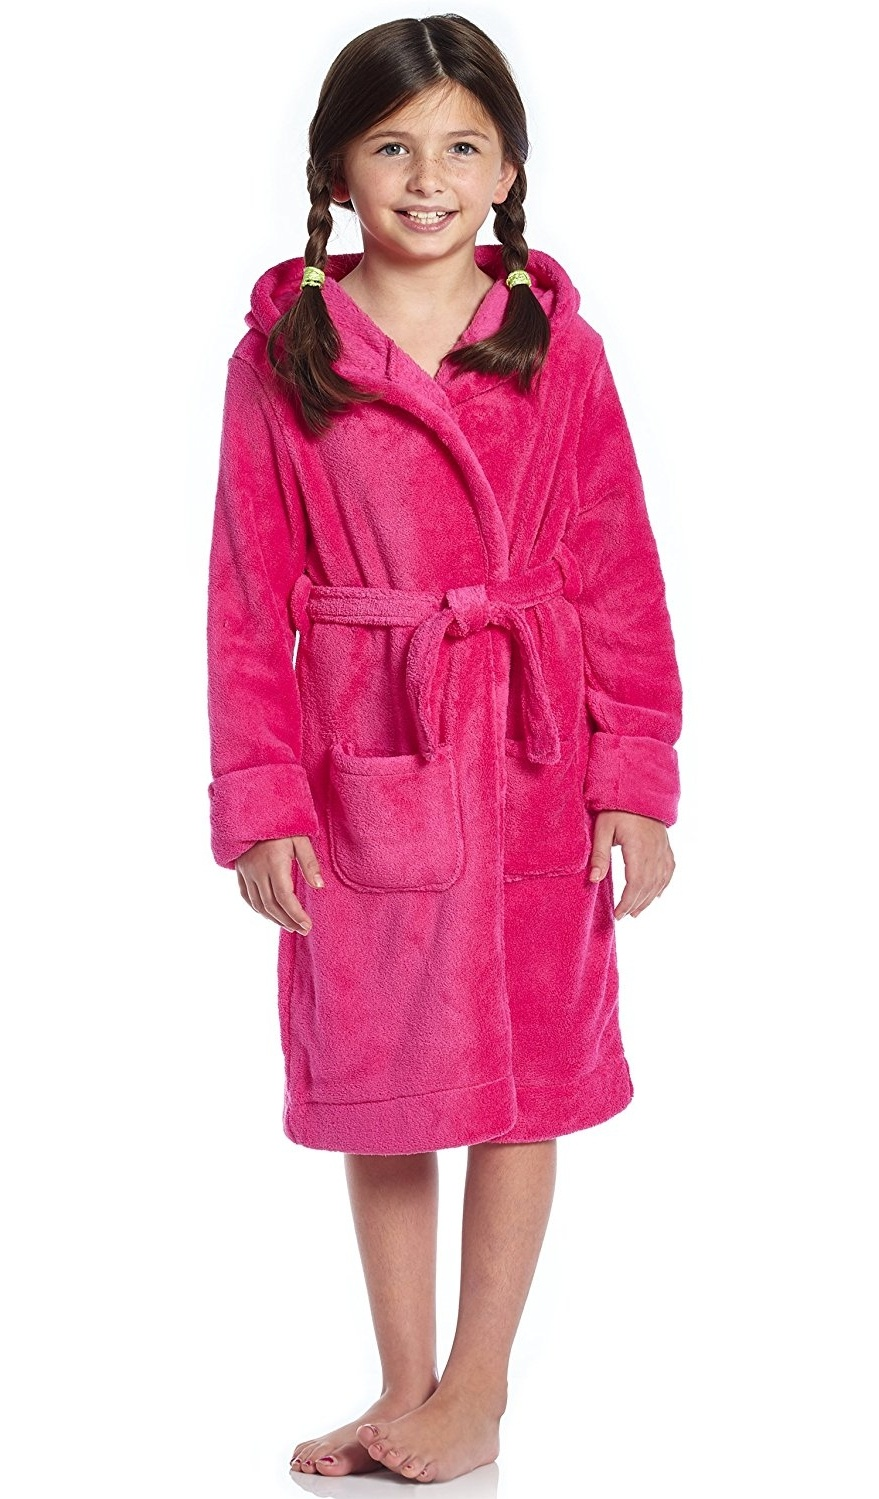 Leveret Kids Robe Boys Hooded Fleece Sleep Robe Bathrobe 2 Toddler-14 Years Variety of Colors